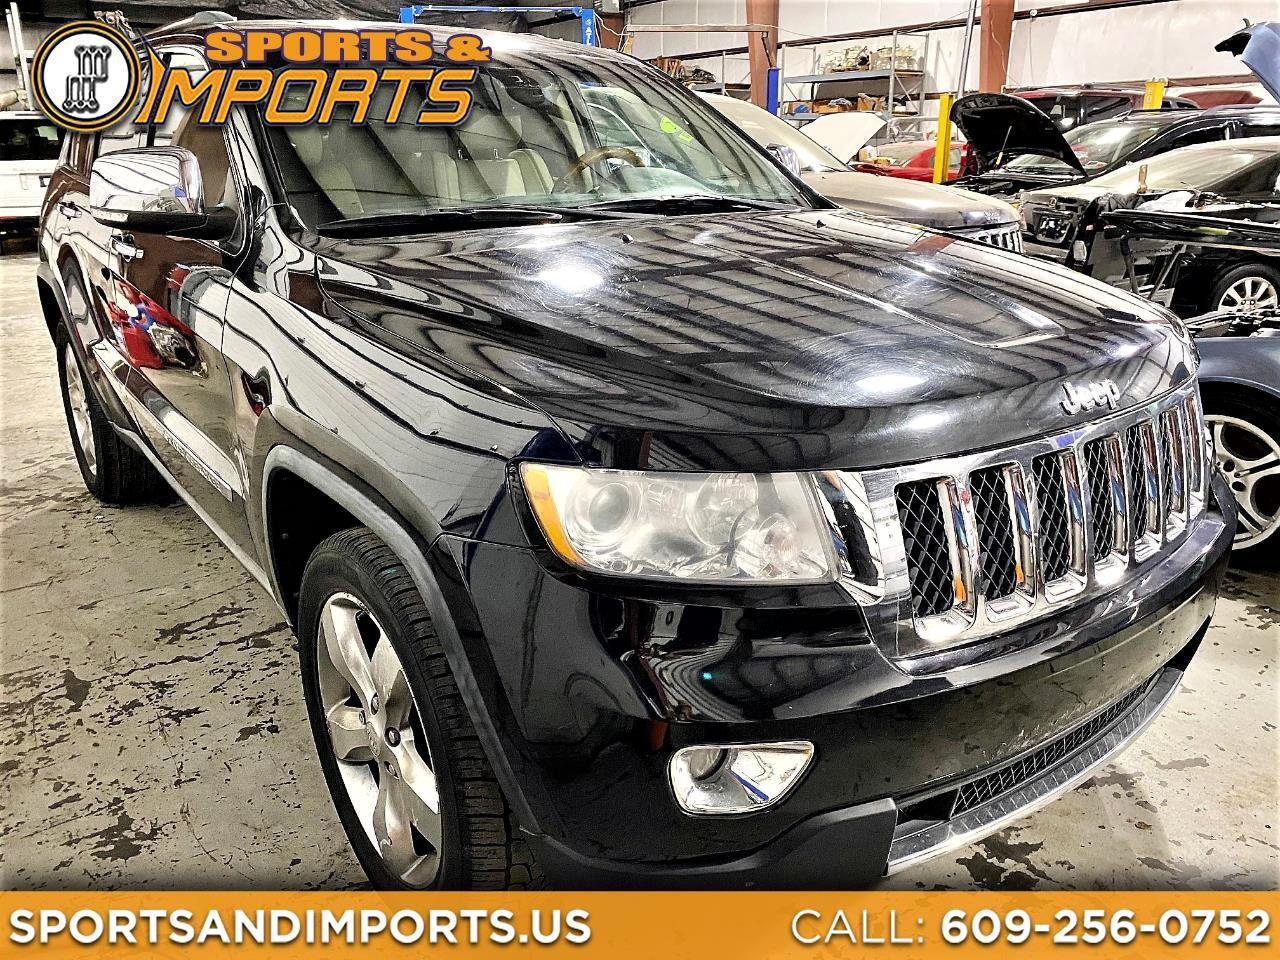 Used 2011 Jeep Grand Cherokee 4wd 4dr Overland For Sale In Trenton Nj 08611 Sports And Imports